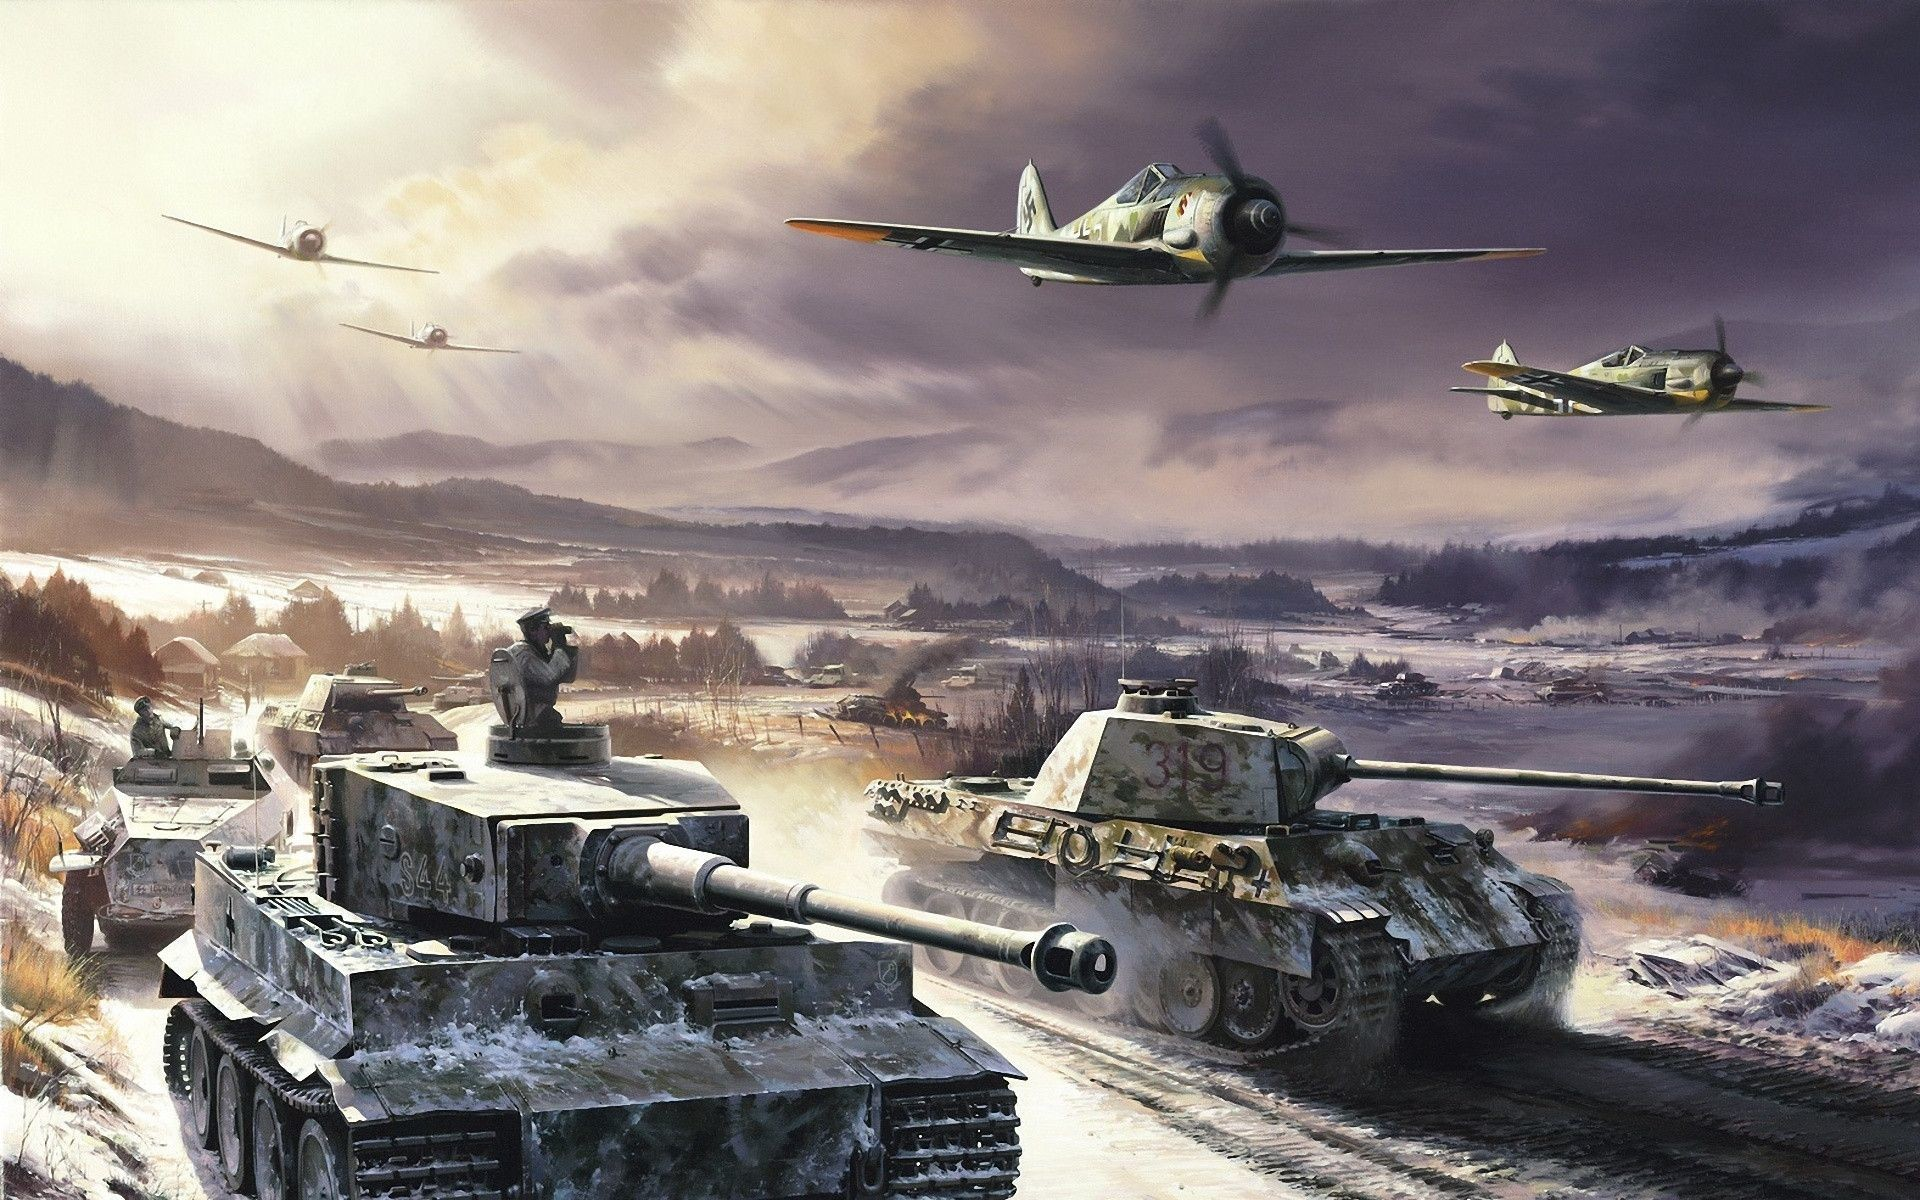 Wwii wallpaper 70 images - World war 2 desktop wallpaper ...